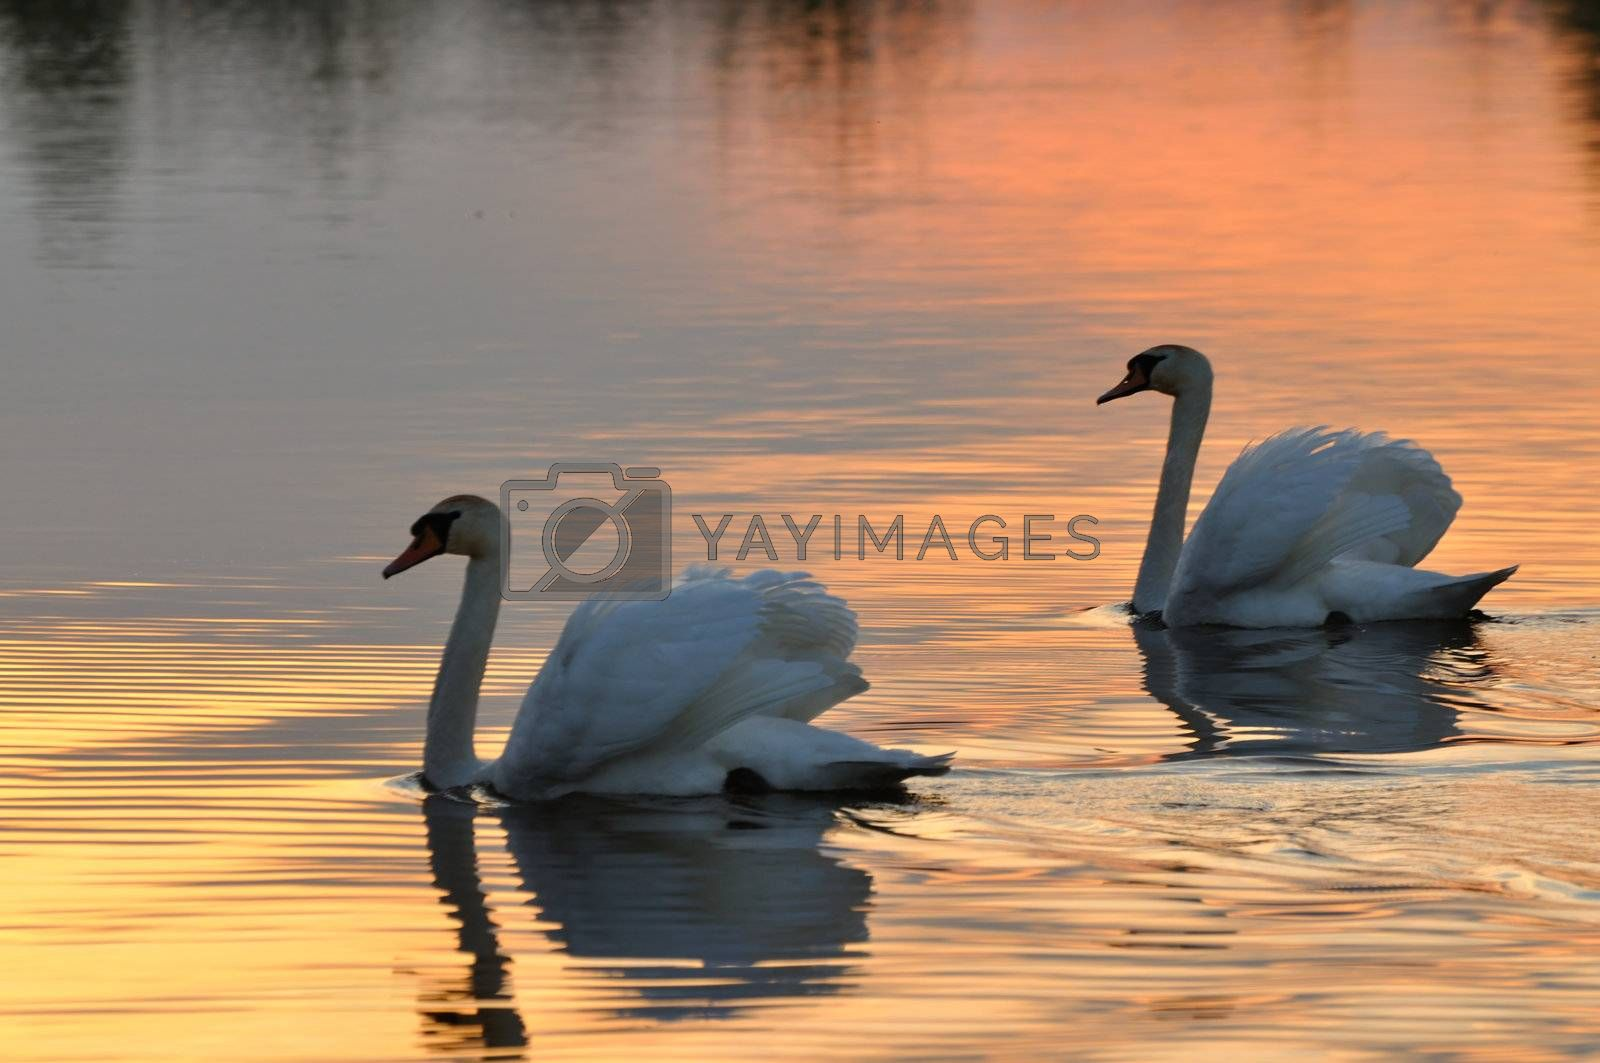 Two swans on a lake at sunset